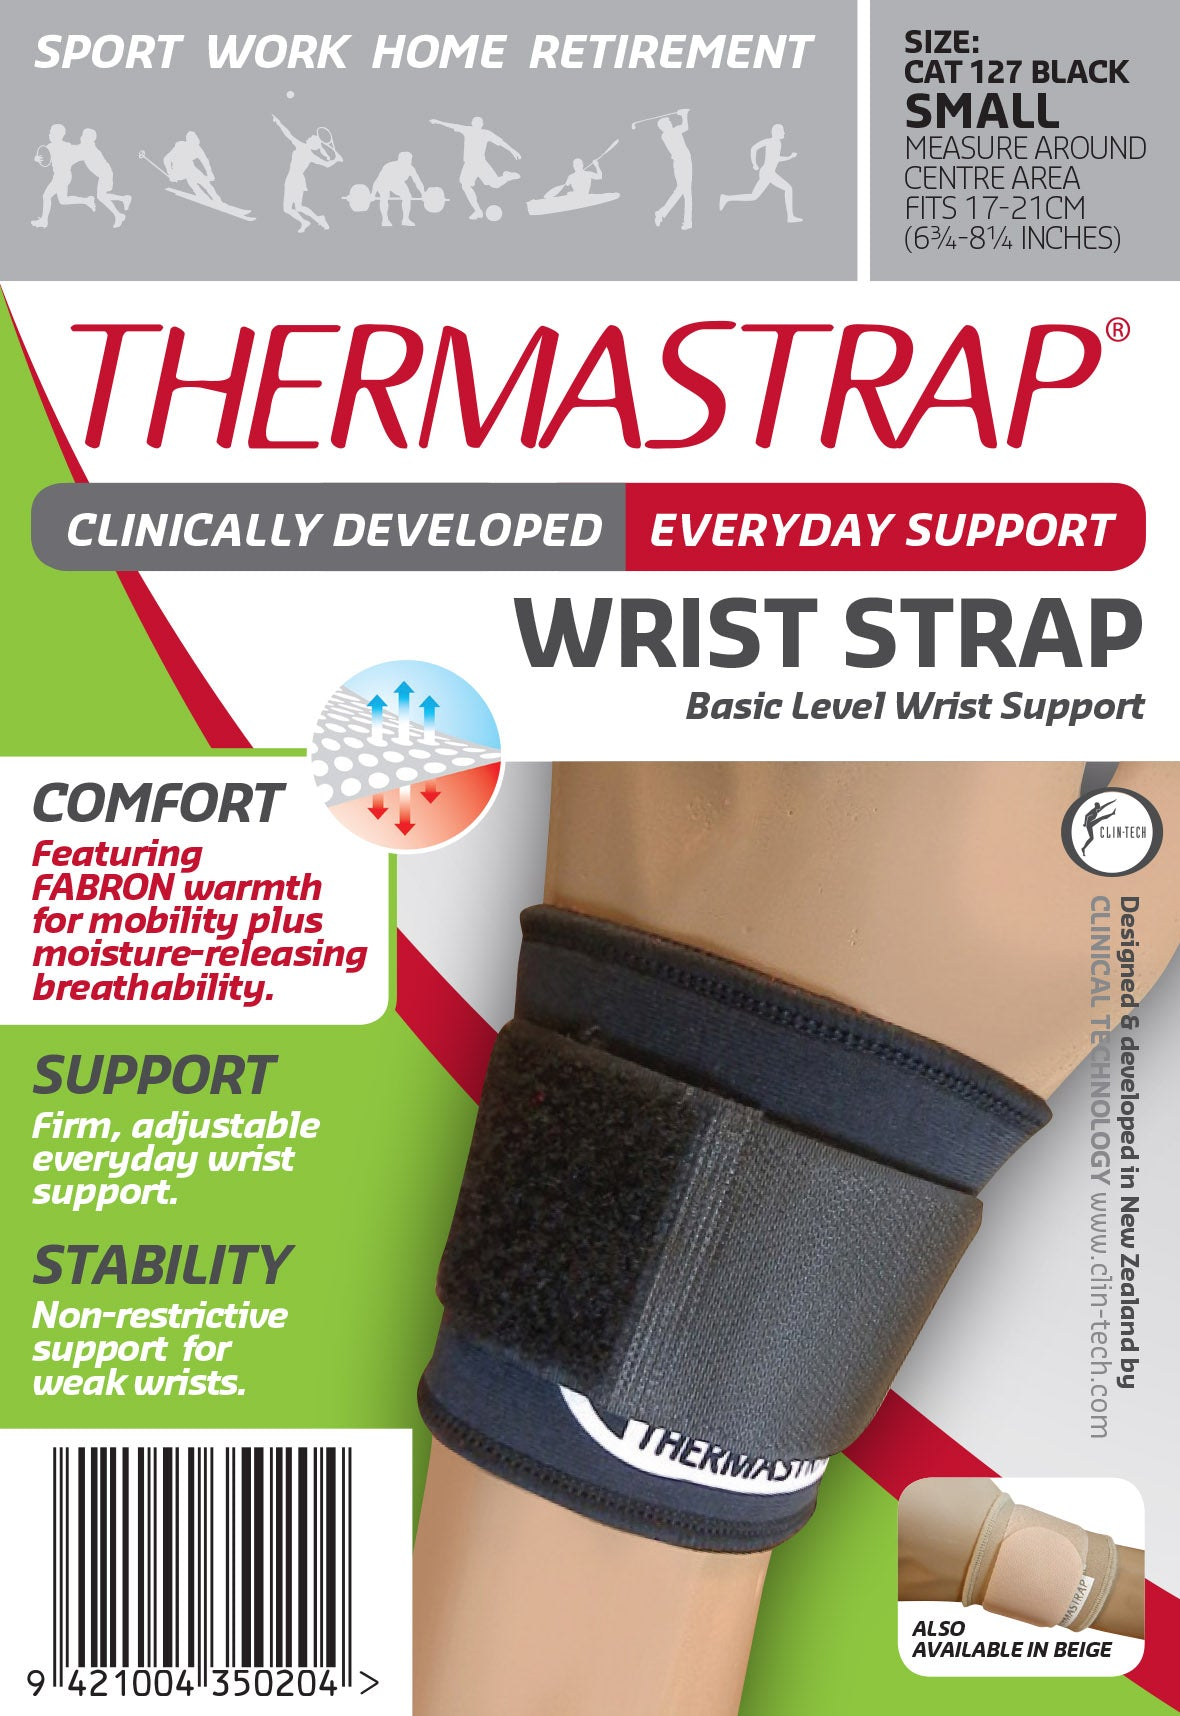 Thermastrap Wrist Strap